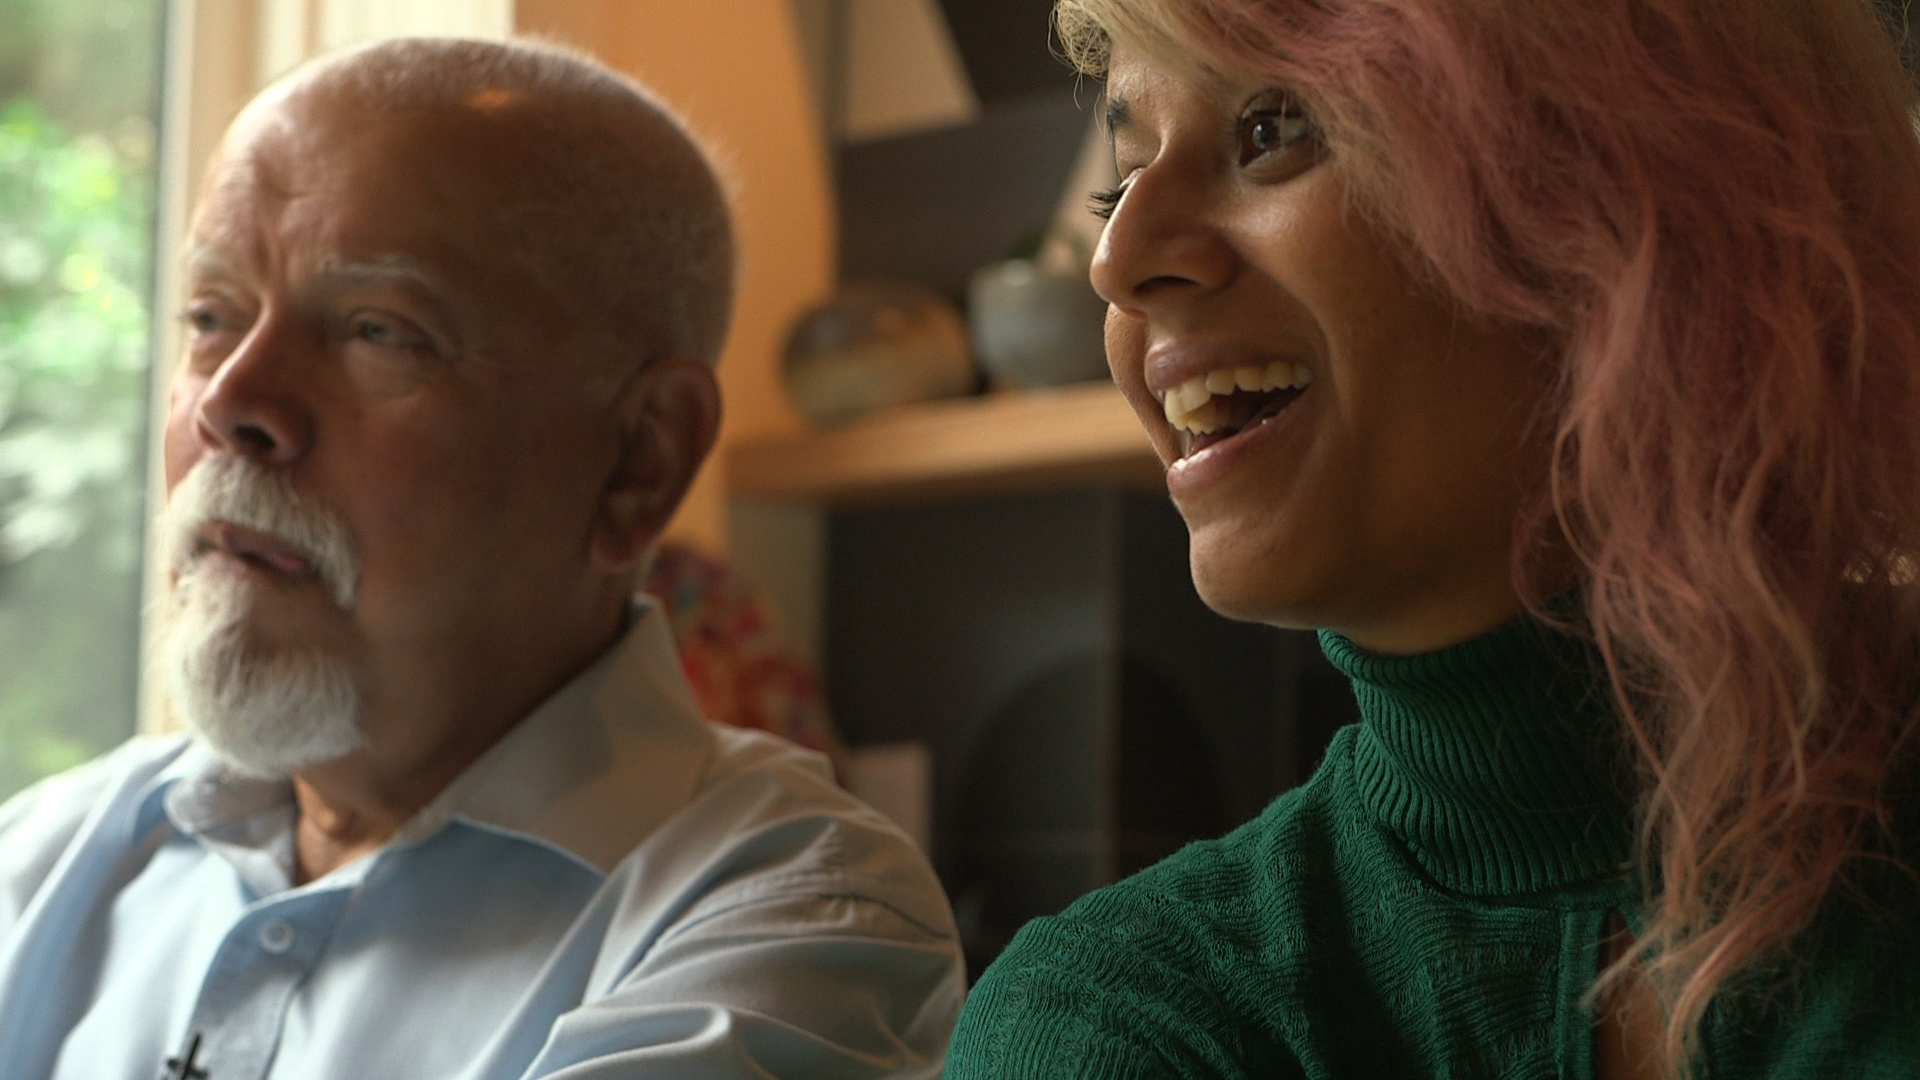 A fillm still from Arrival Archives shows a ponderous older man with a white goatee and a younger laughing woman with pink-dyed hair in a warm domestic interior space